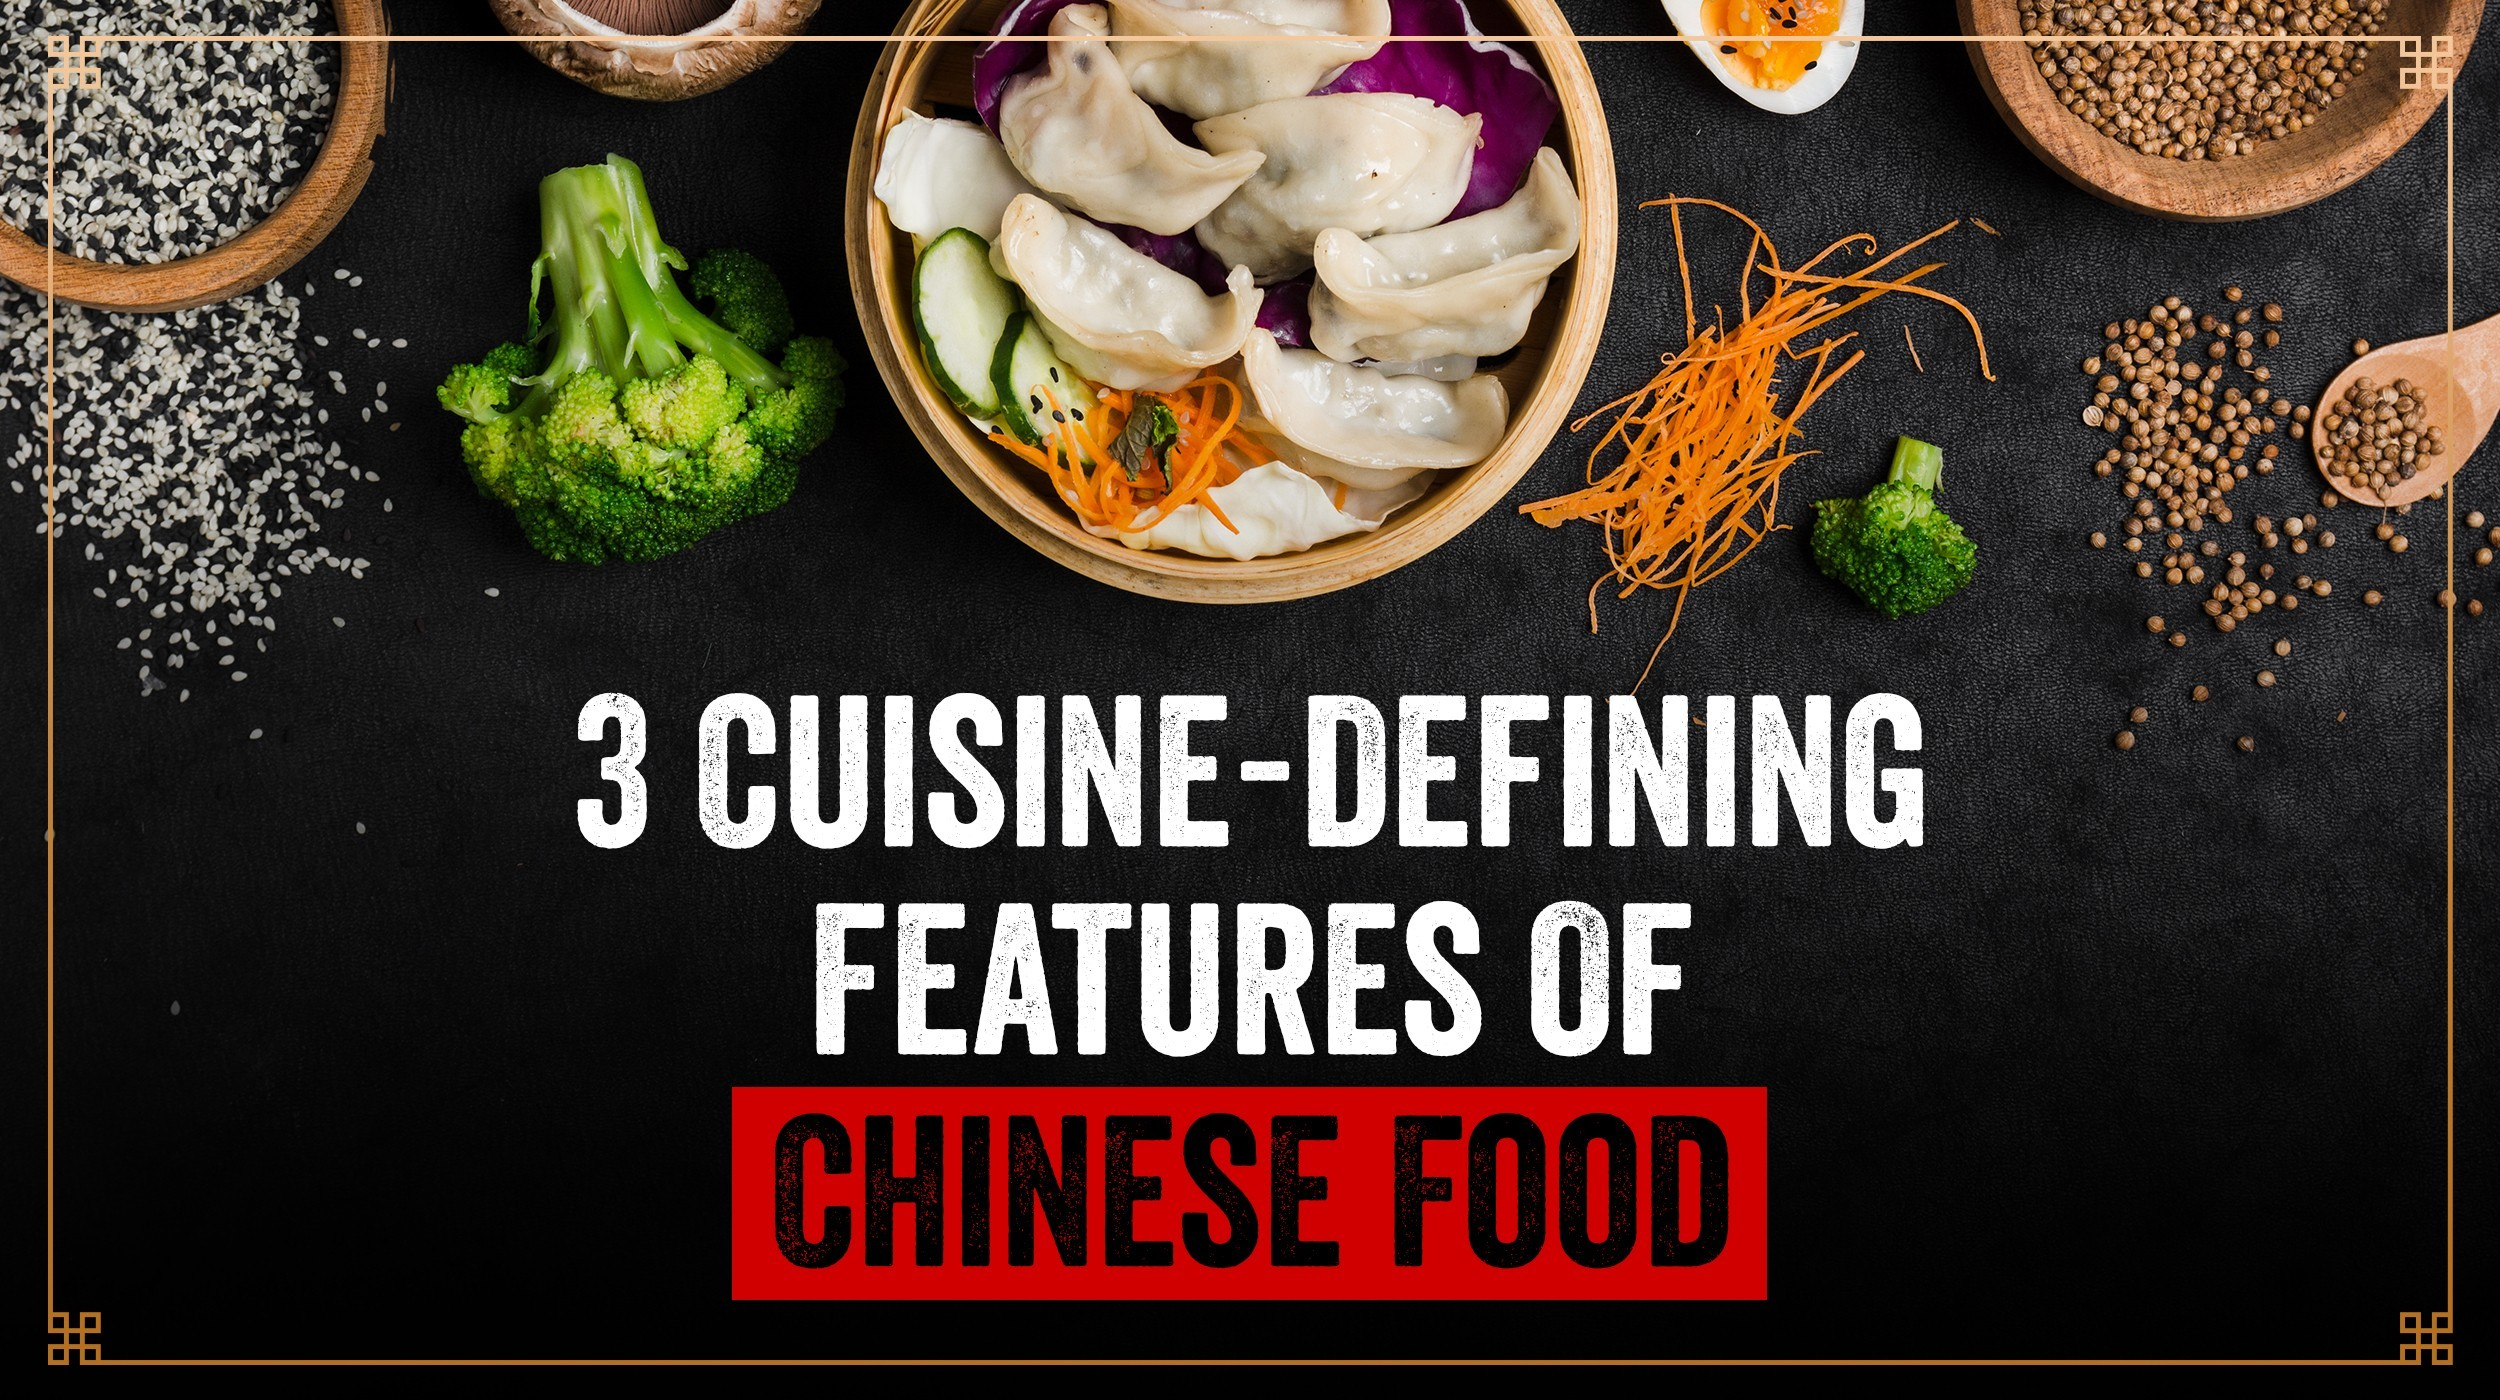 3 cuisine defining features of chinese food